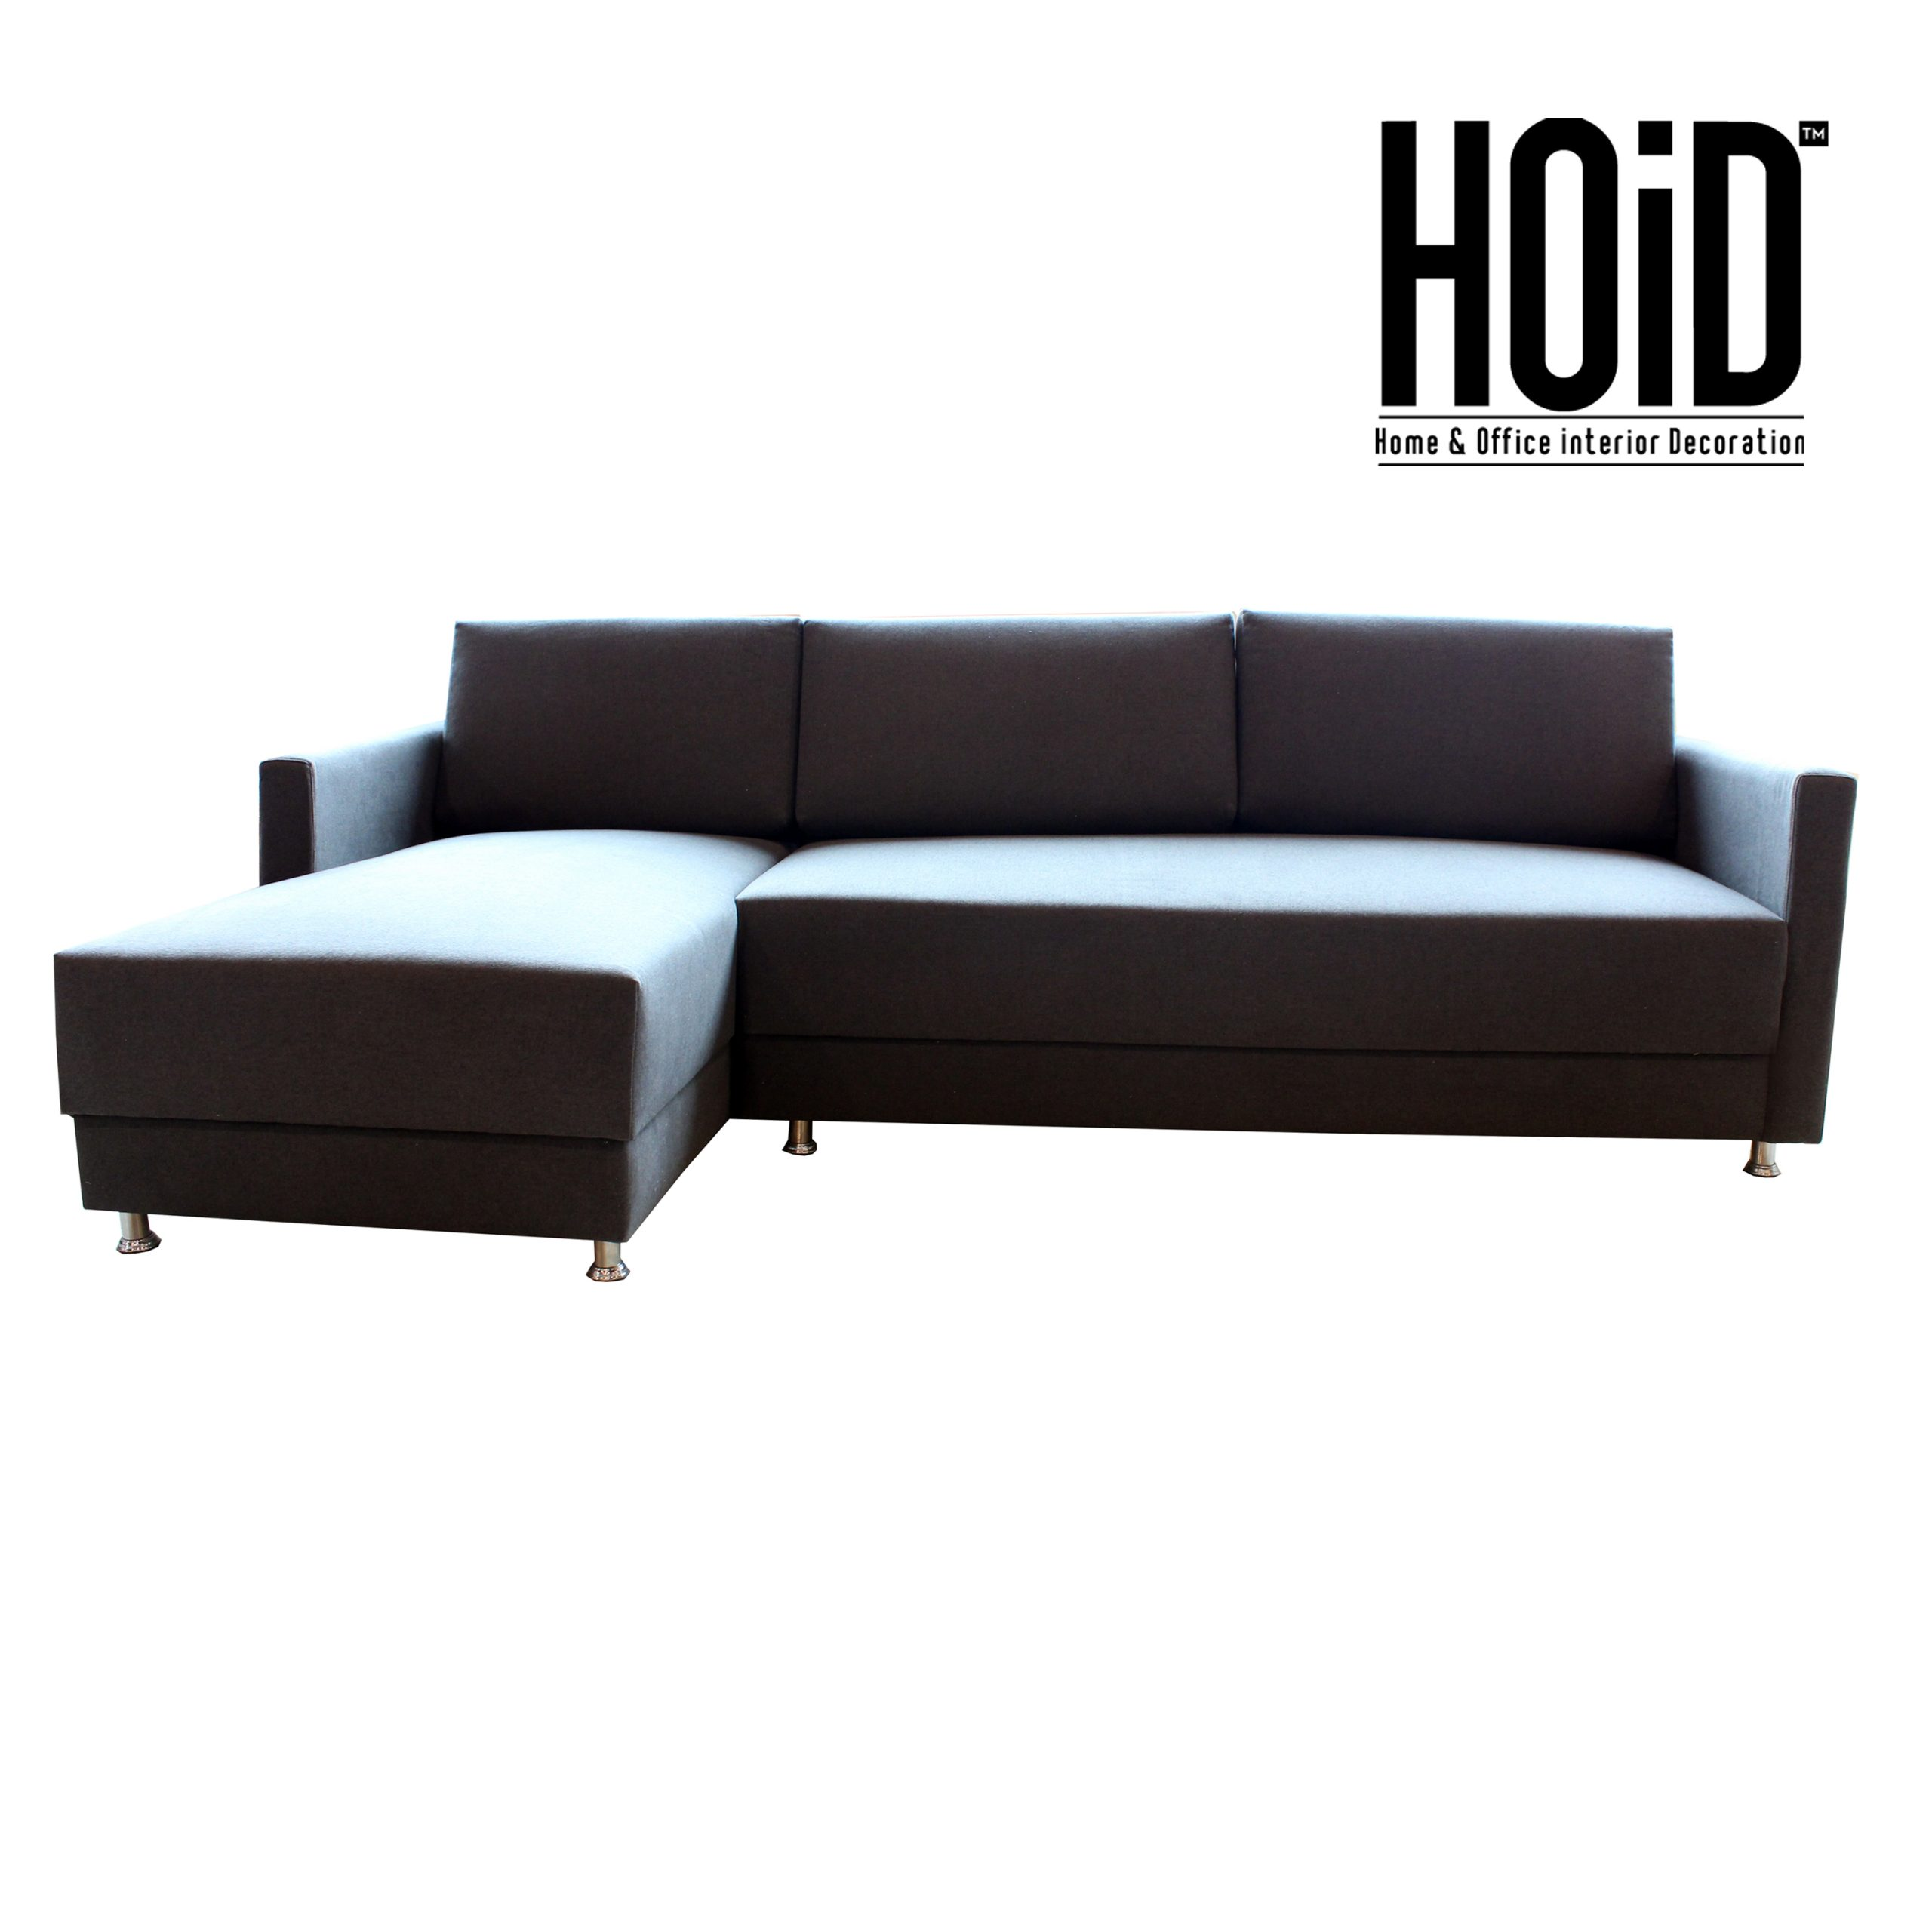 Picture of: Sleek 5 Seater L Shaped Sofa Hoid Pk